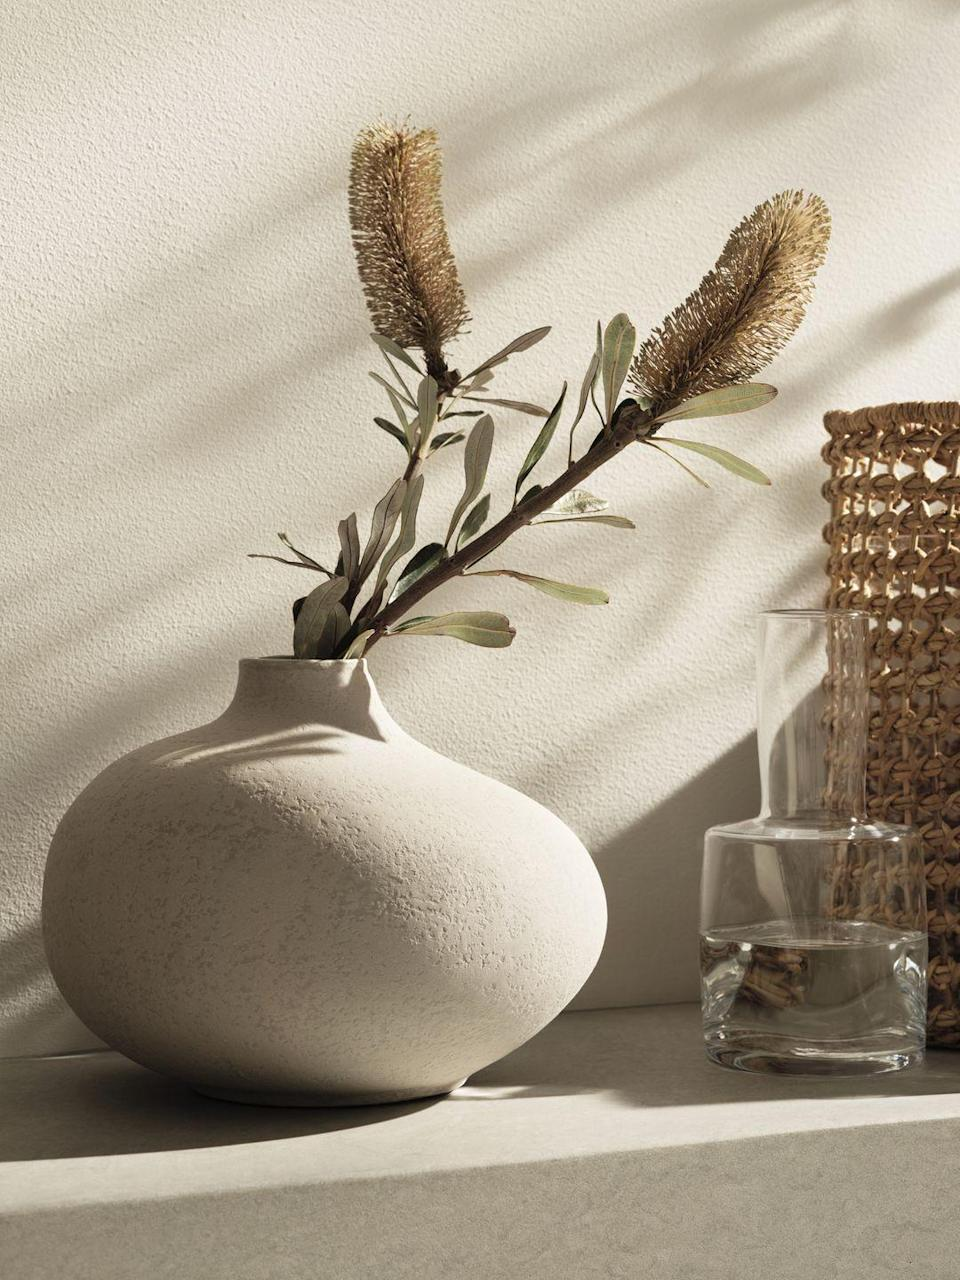 """<p>Show off your favourite blooms with this gorgeous white ceramic vase. An all-time classic, let this pretty ceramic steal the show.</p><p>'For centuries, artisans all over the world have treasured craftmanship made by hand,' say H&M Home. 'Knowledge of weaving, glassblowing, knitting and ceramics travels from generation to generation, reminding us to slow down and value the unique.'</p><p><a class=""""link rapid-noclick-resp"""" href=""""https://go.redirectingat.com?id=127X1599956&url=https%3A%2F%2Fwww2.hm.com%2Fen_gb%2Fhome.html&sref=https%3A%2F%2Fwww.housebeautiful.com%2Fuk%2Flifestyle%2Fshopping%2Fg36671419%2Fhandm-home-love-of-craft-collection-artisans%2F"""" rel=""""nofollow noopener"""" target=""""_blank"""" data-ylk=""""slk:COMING SOON"""">COMING SOON</a></p>"""